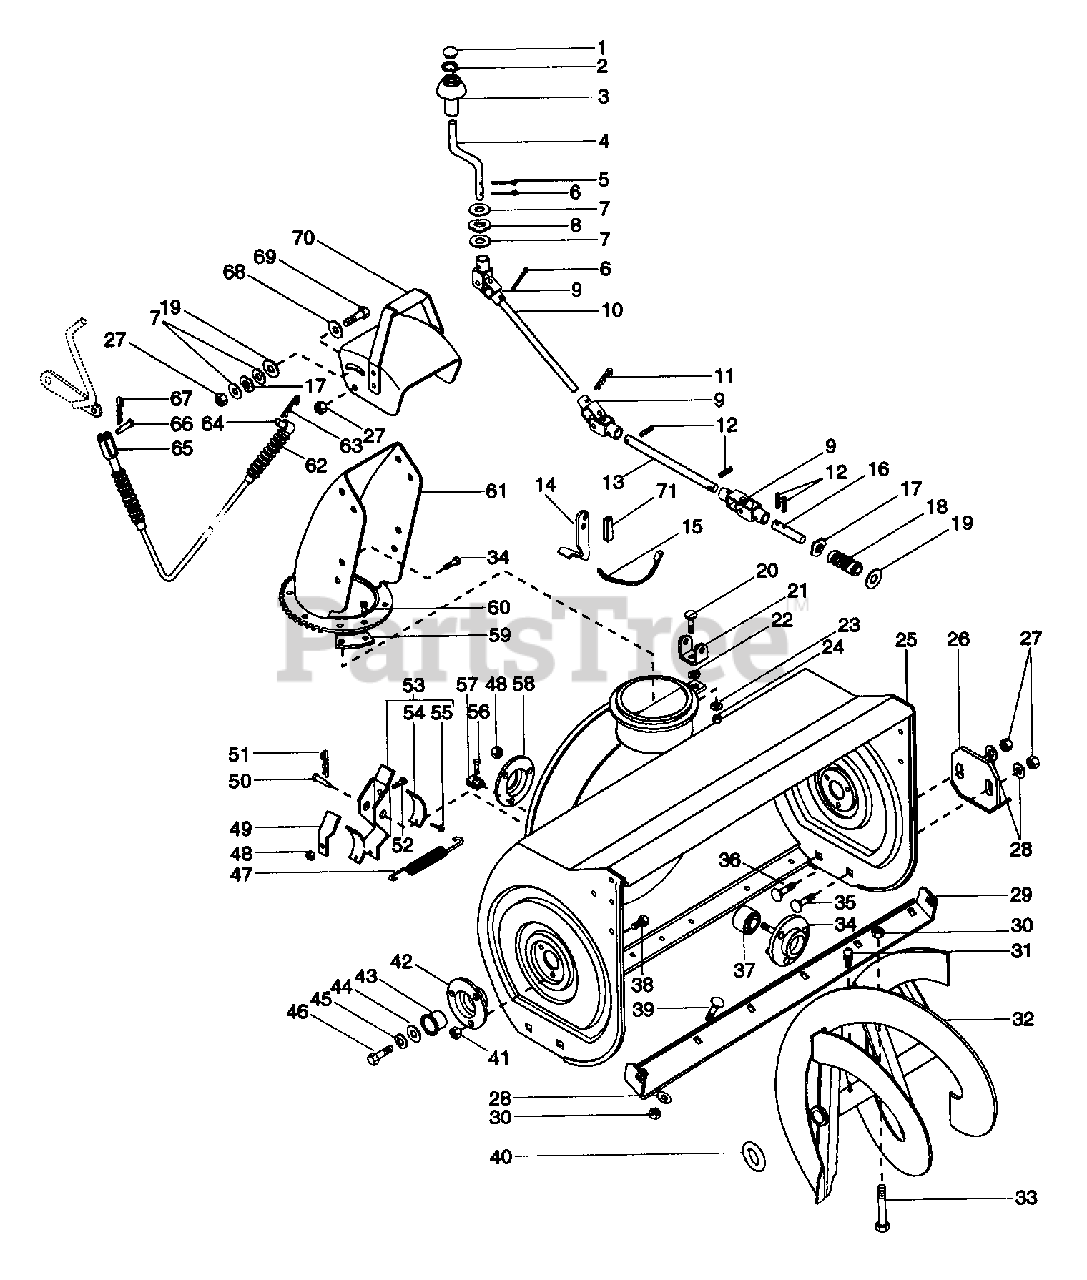 Ariens Parts on the Auger And Impeller Diagram for 924082